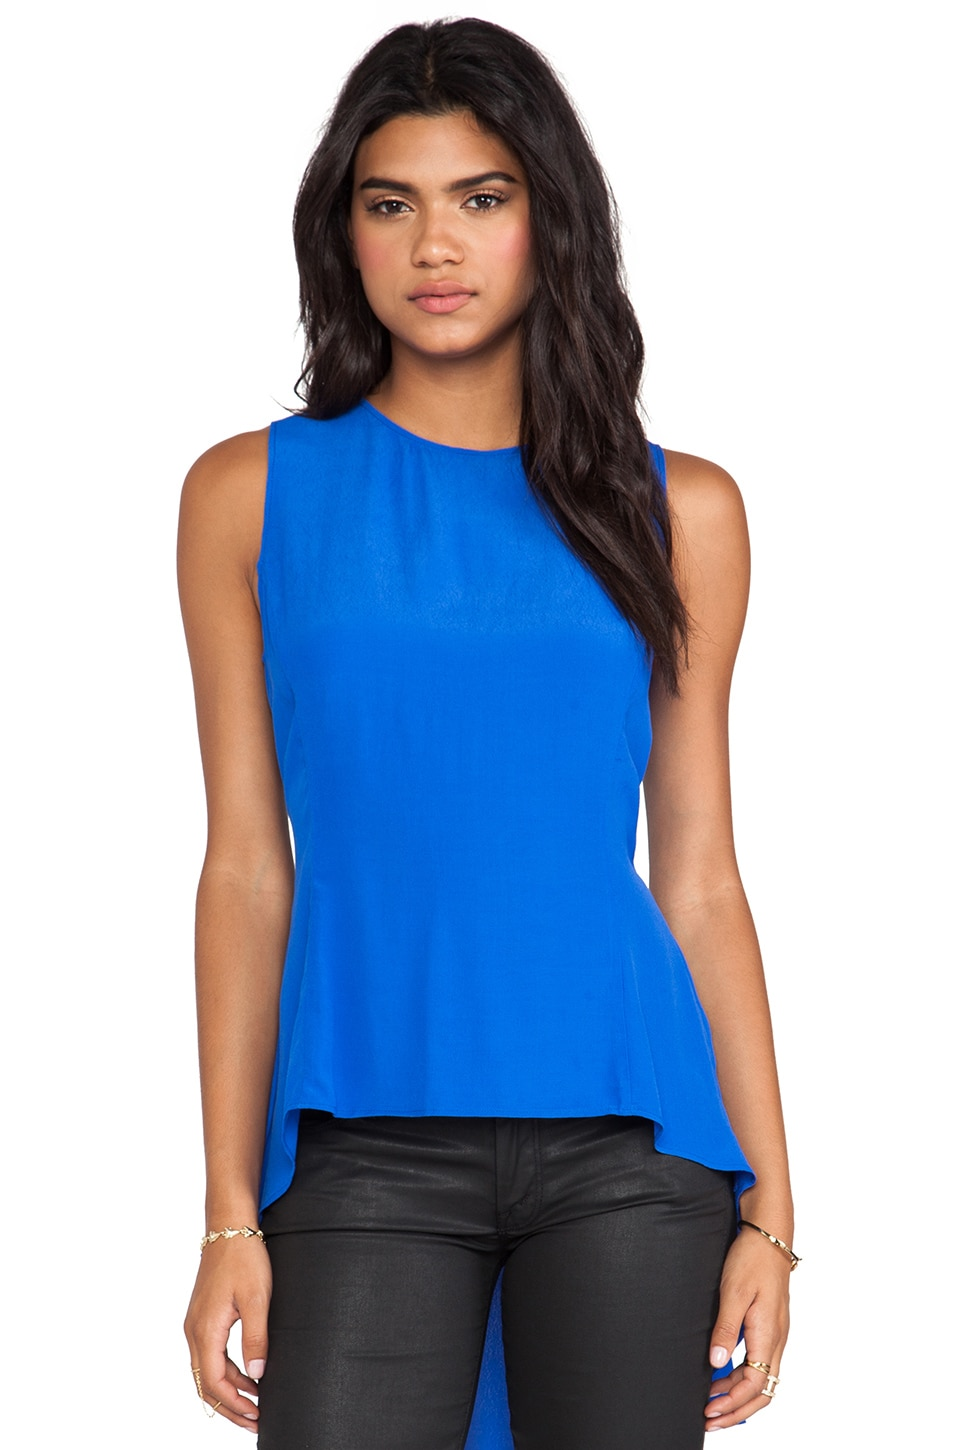 Backstage Express Yourself Top in Cobalt